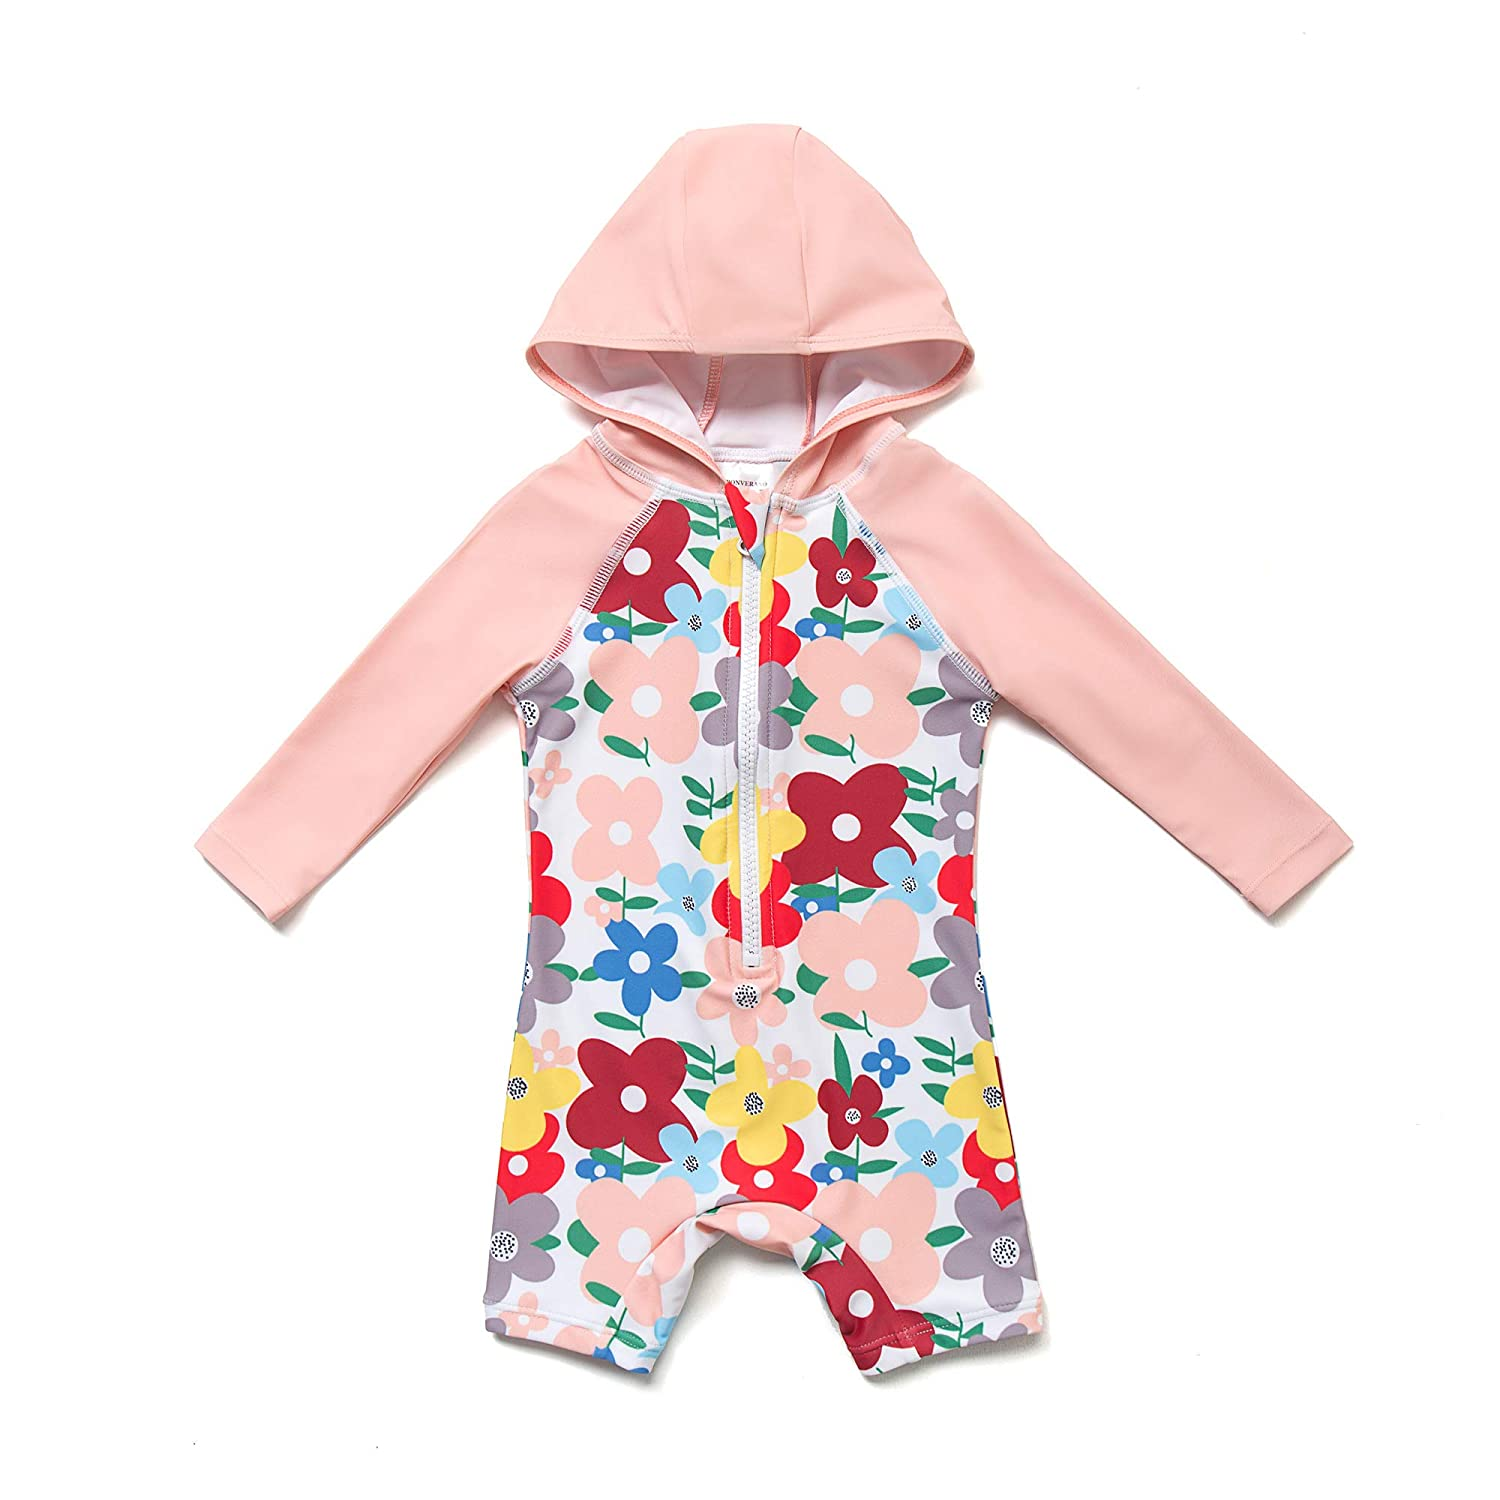 Baby & Toddler Girls Long Sleeve One-Piece Swimsuit with UPF 50+ Sun Protection